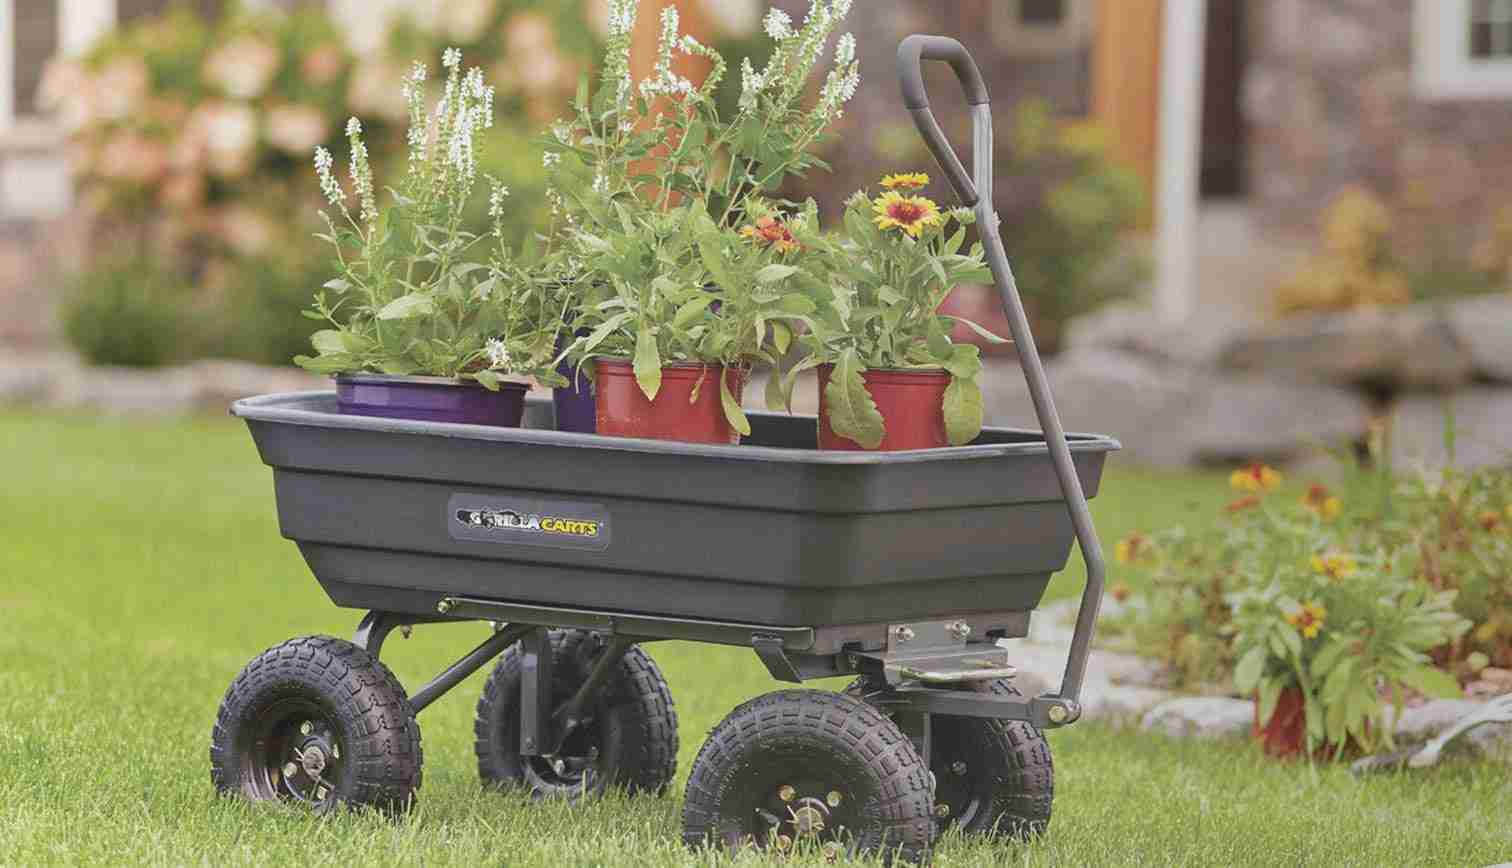 10 Best Wheelbarrow Reviews 2019 – Buy the Best One